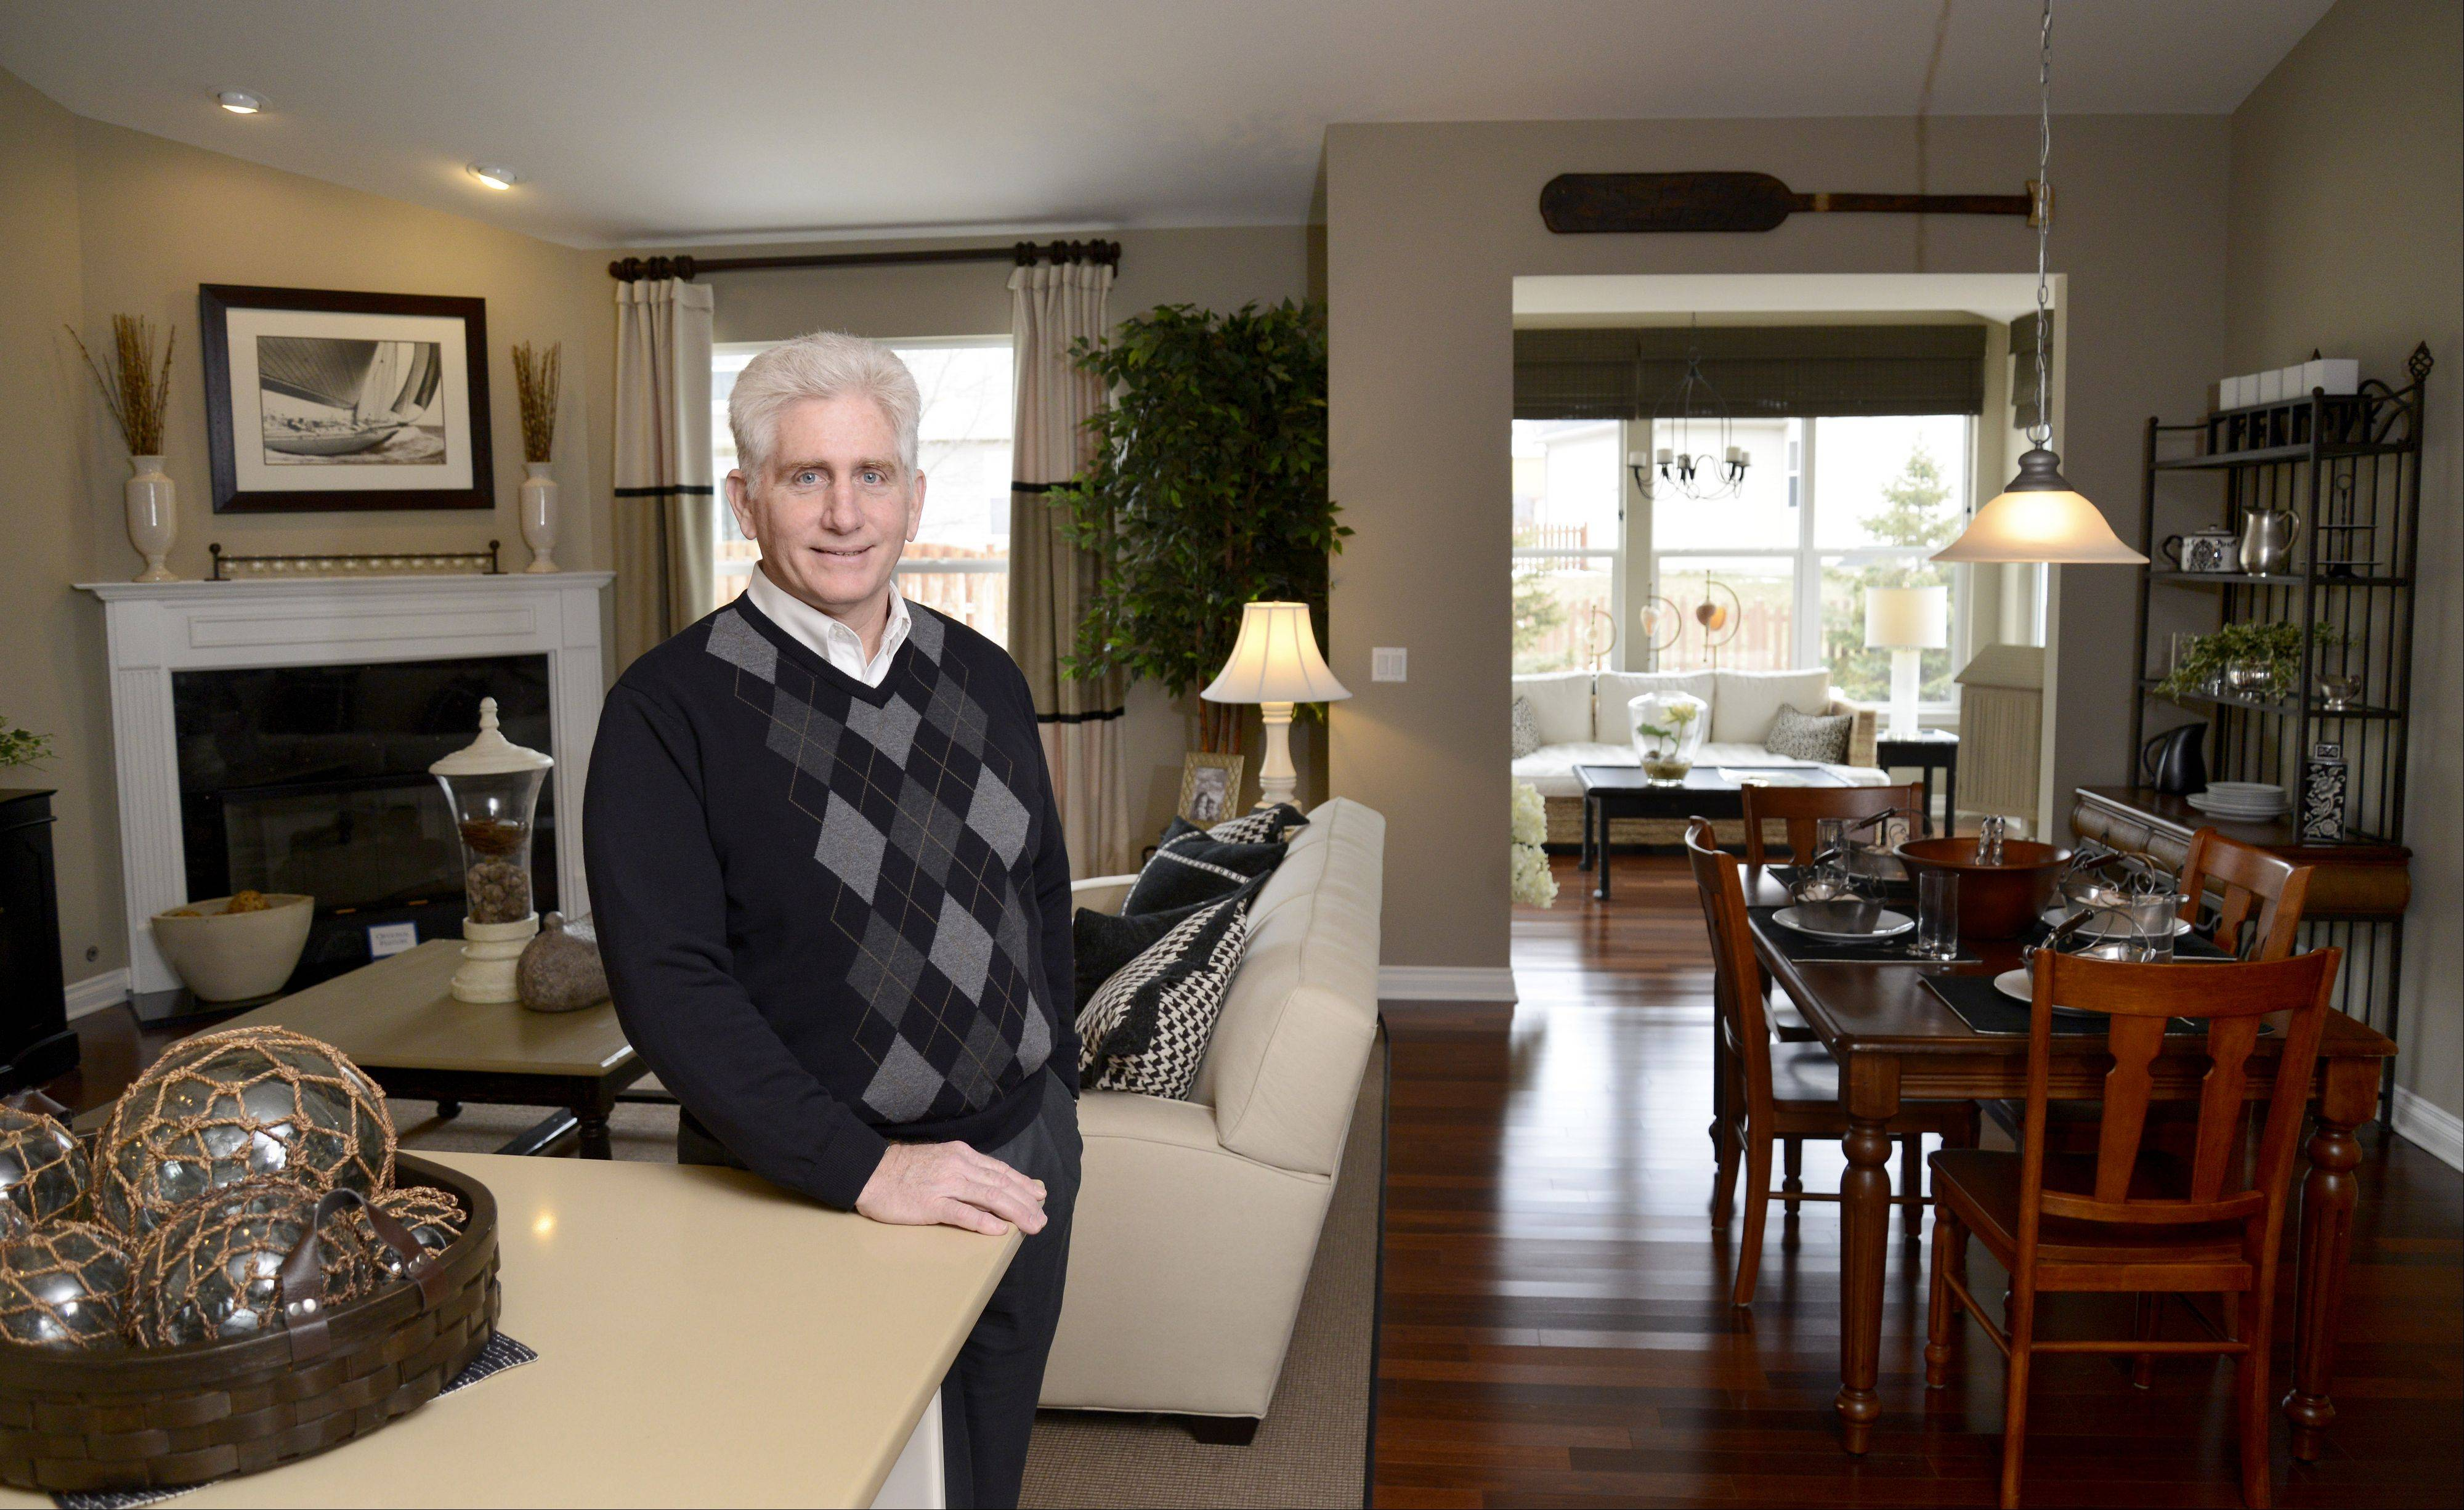 Roger Gerstad, president of Gerstad Builders, shows the Jefferson model in his Liberty Trails community in McHenry.